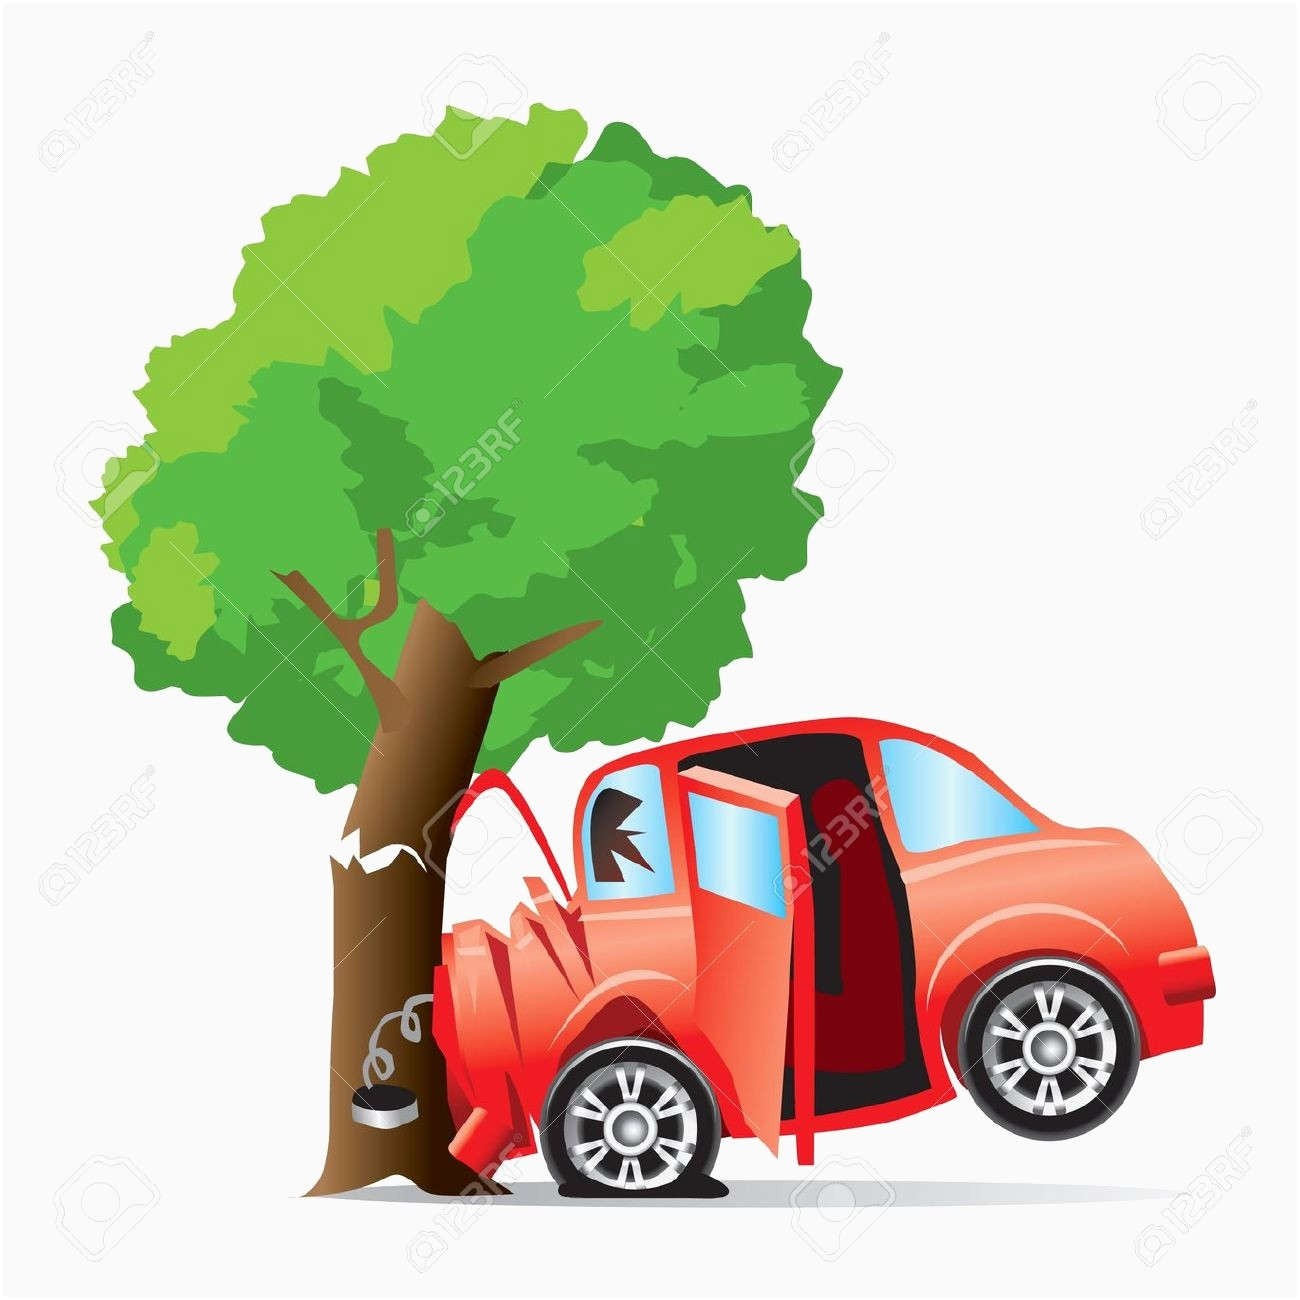 car crash clipart at getdrawings com free for personal use car rh getdrawings com car accident clipart images car accident clipart free